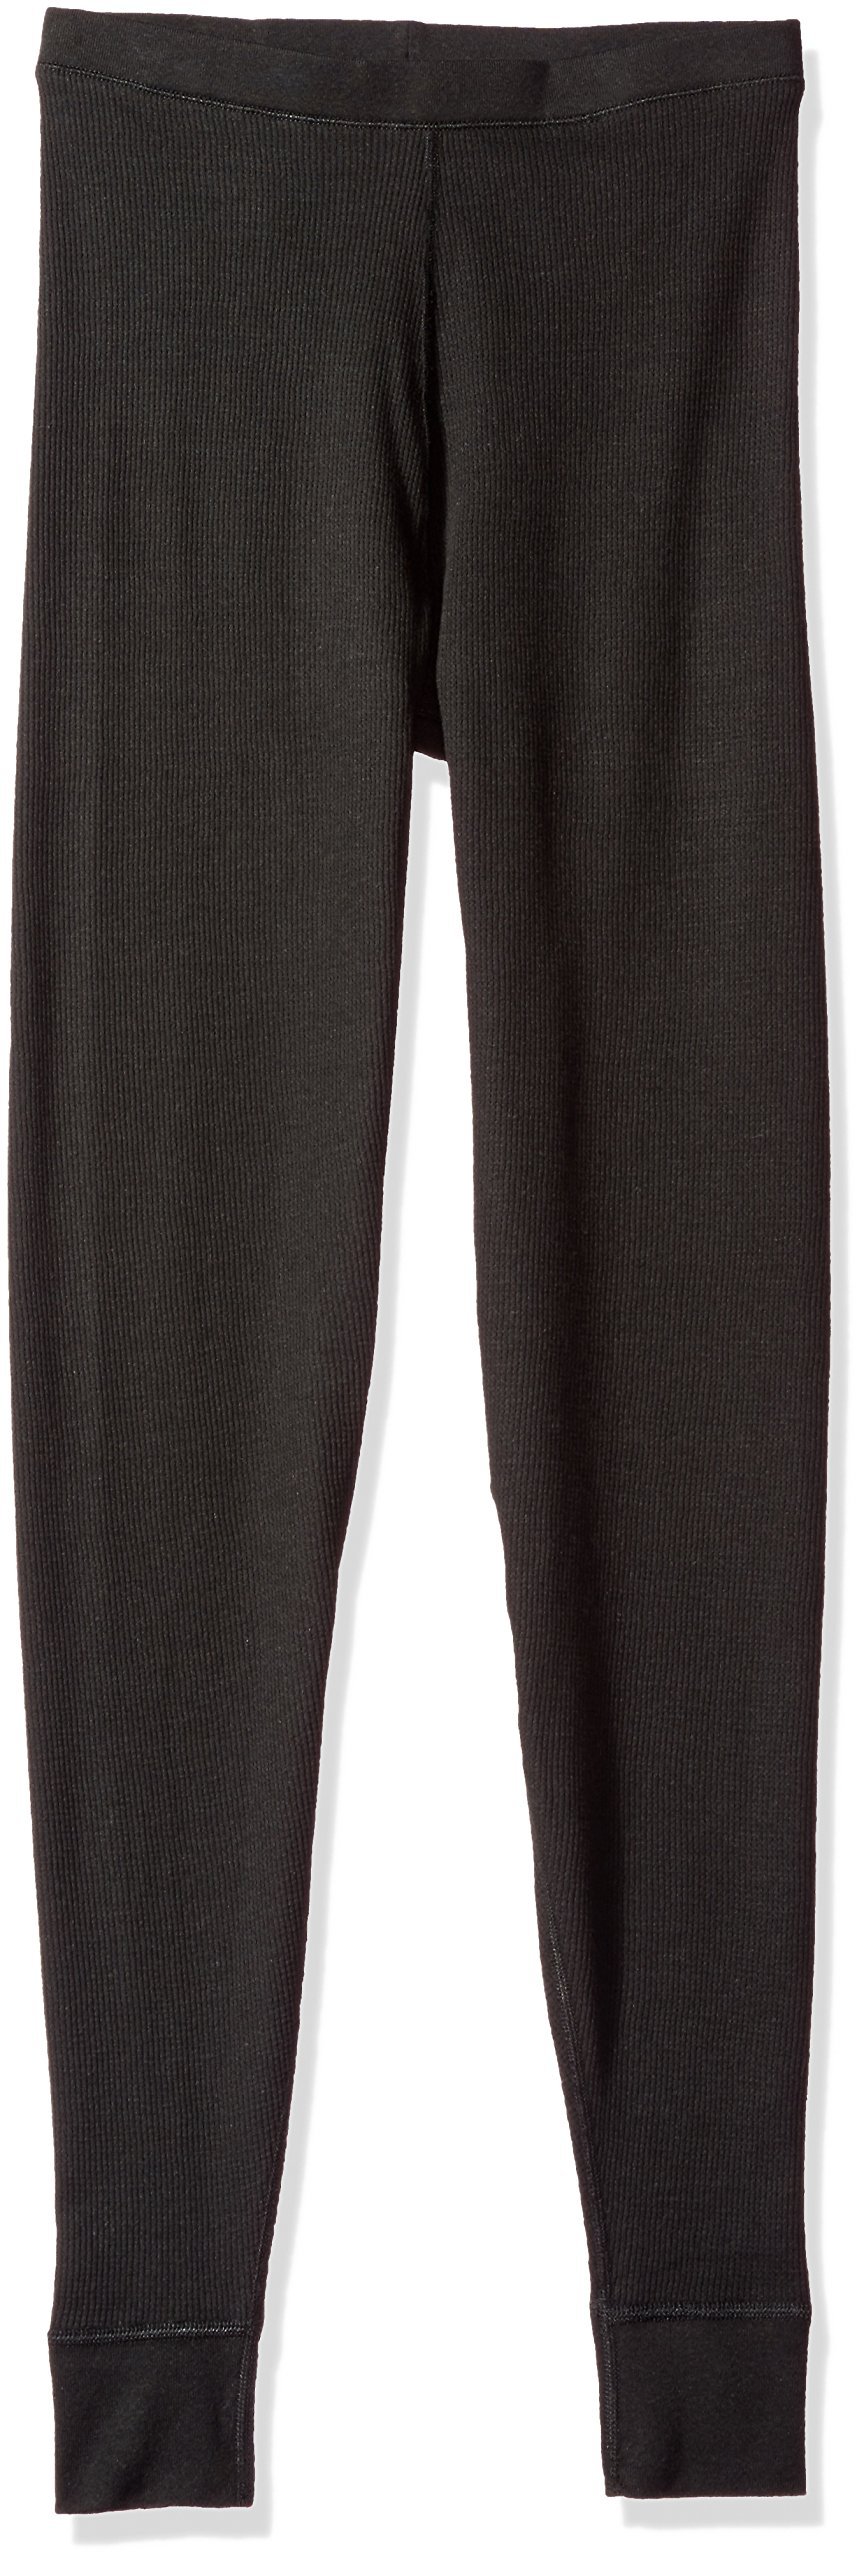 Hanes Women's Plus Size Ultimate Thermal Pant, Black, 3XL